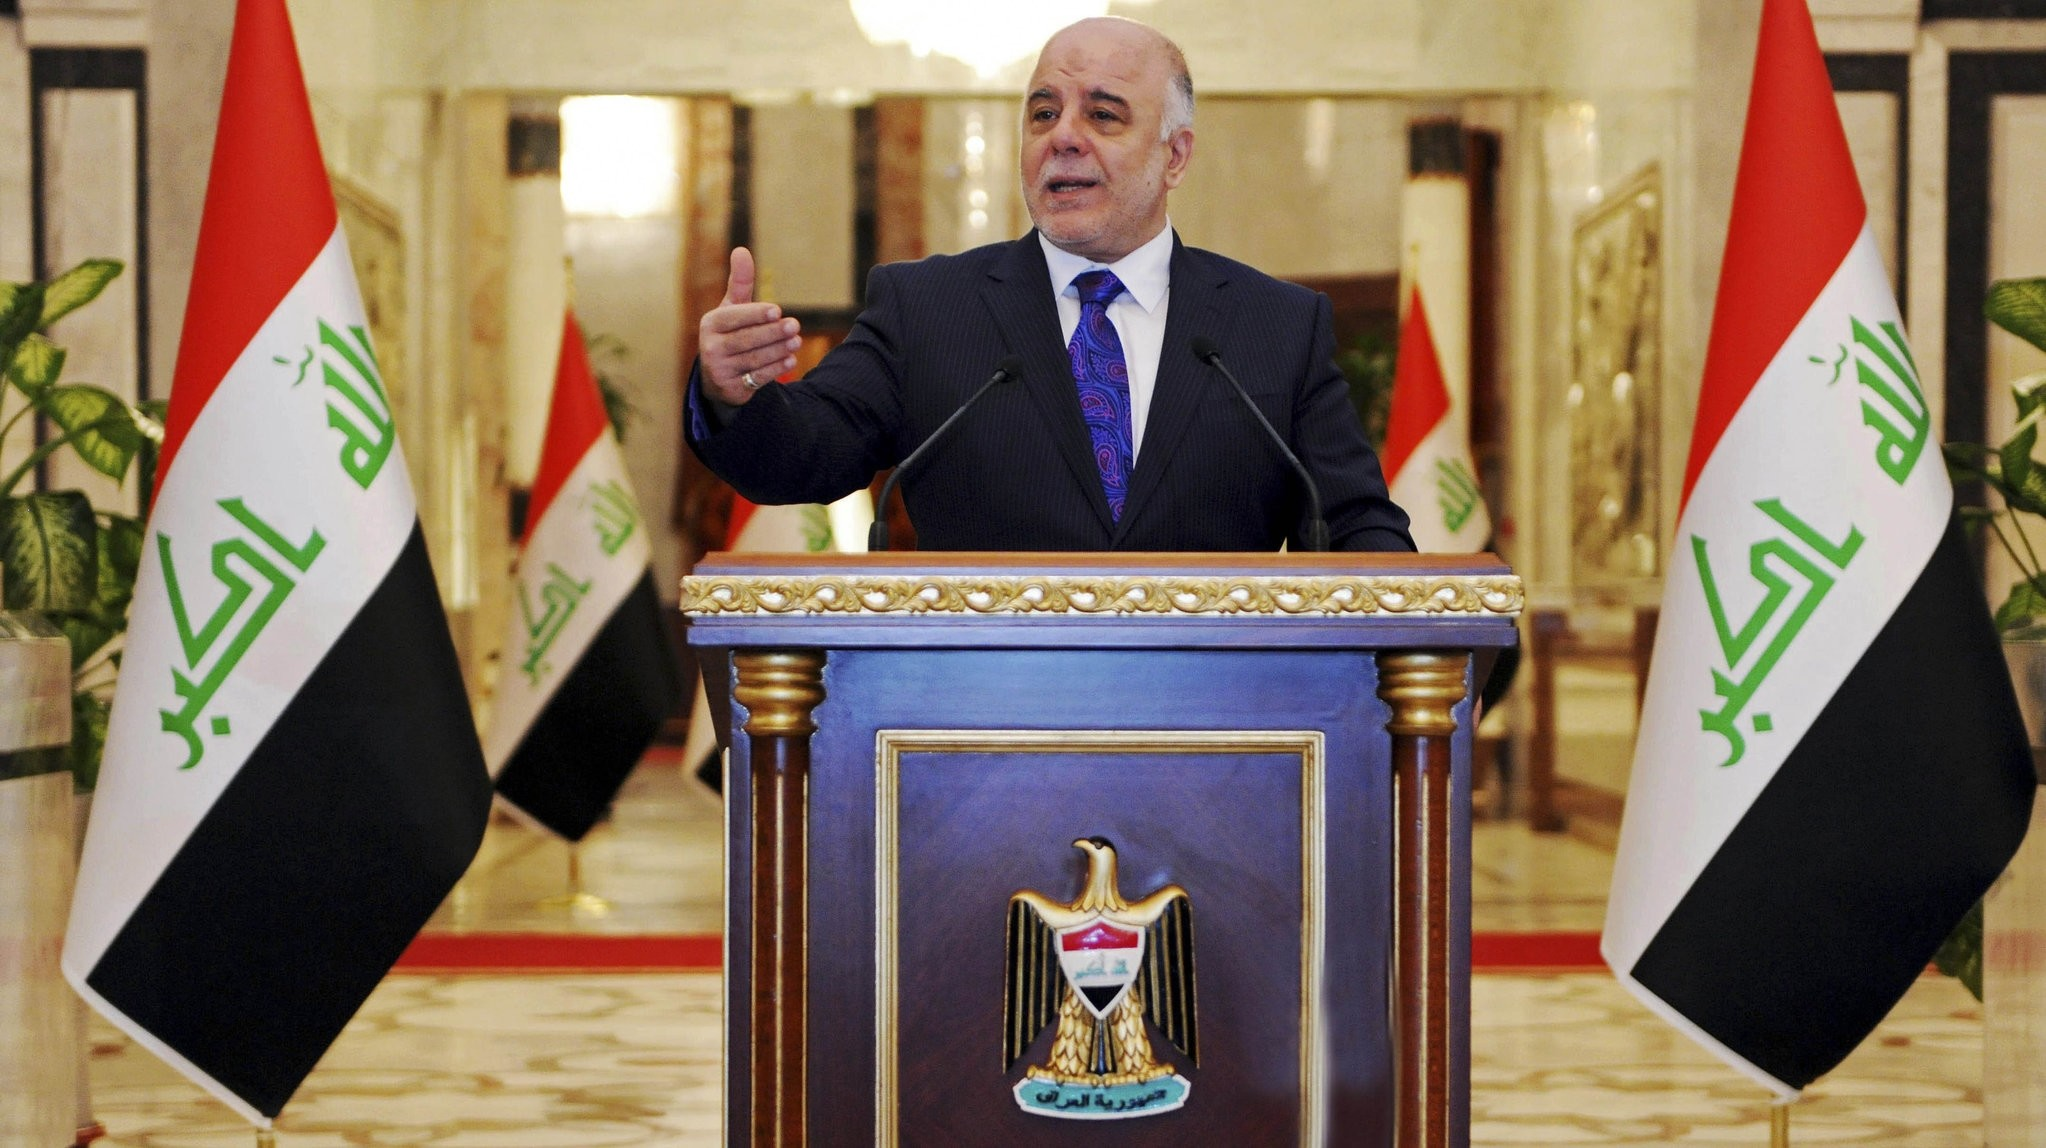 Iraqi premier-designate Haider al-Abadi speaks at his first press conference since accepting the nomination to be Iraqu2019s next prime minister, in Baghdad, Iraq, Aug. 25, 2014. (AP Photo)